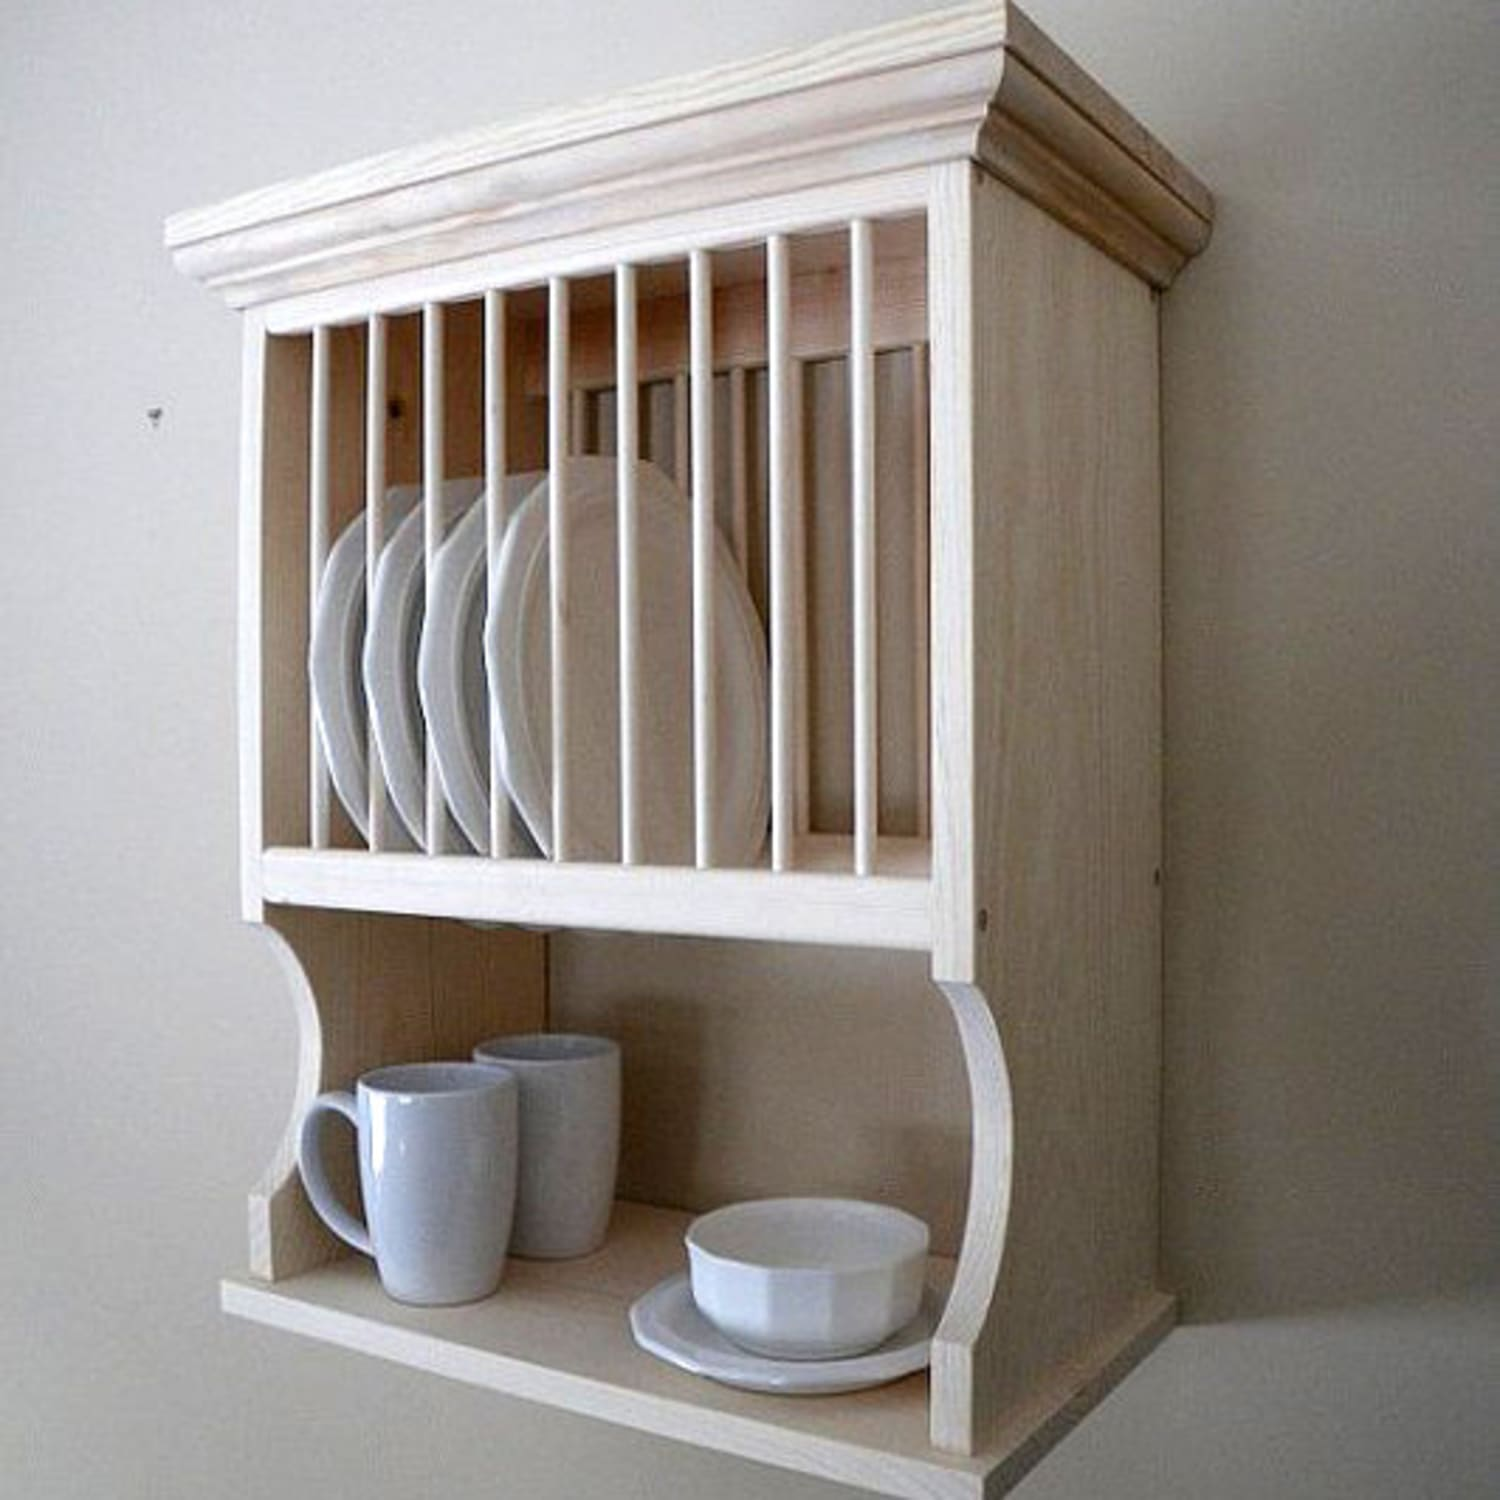 3 Different Wall Mounted Dish Racks What S Your Style